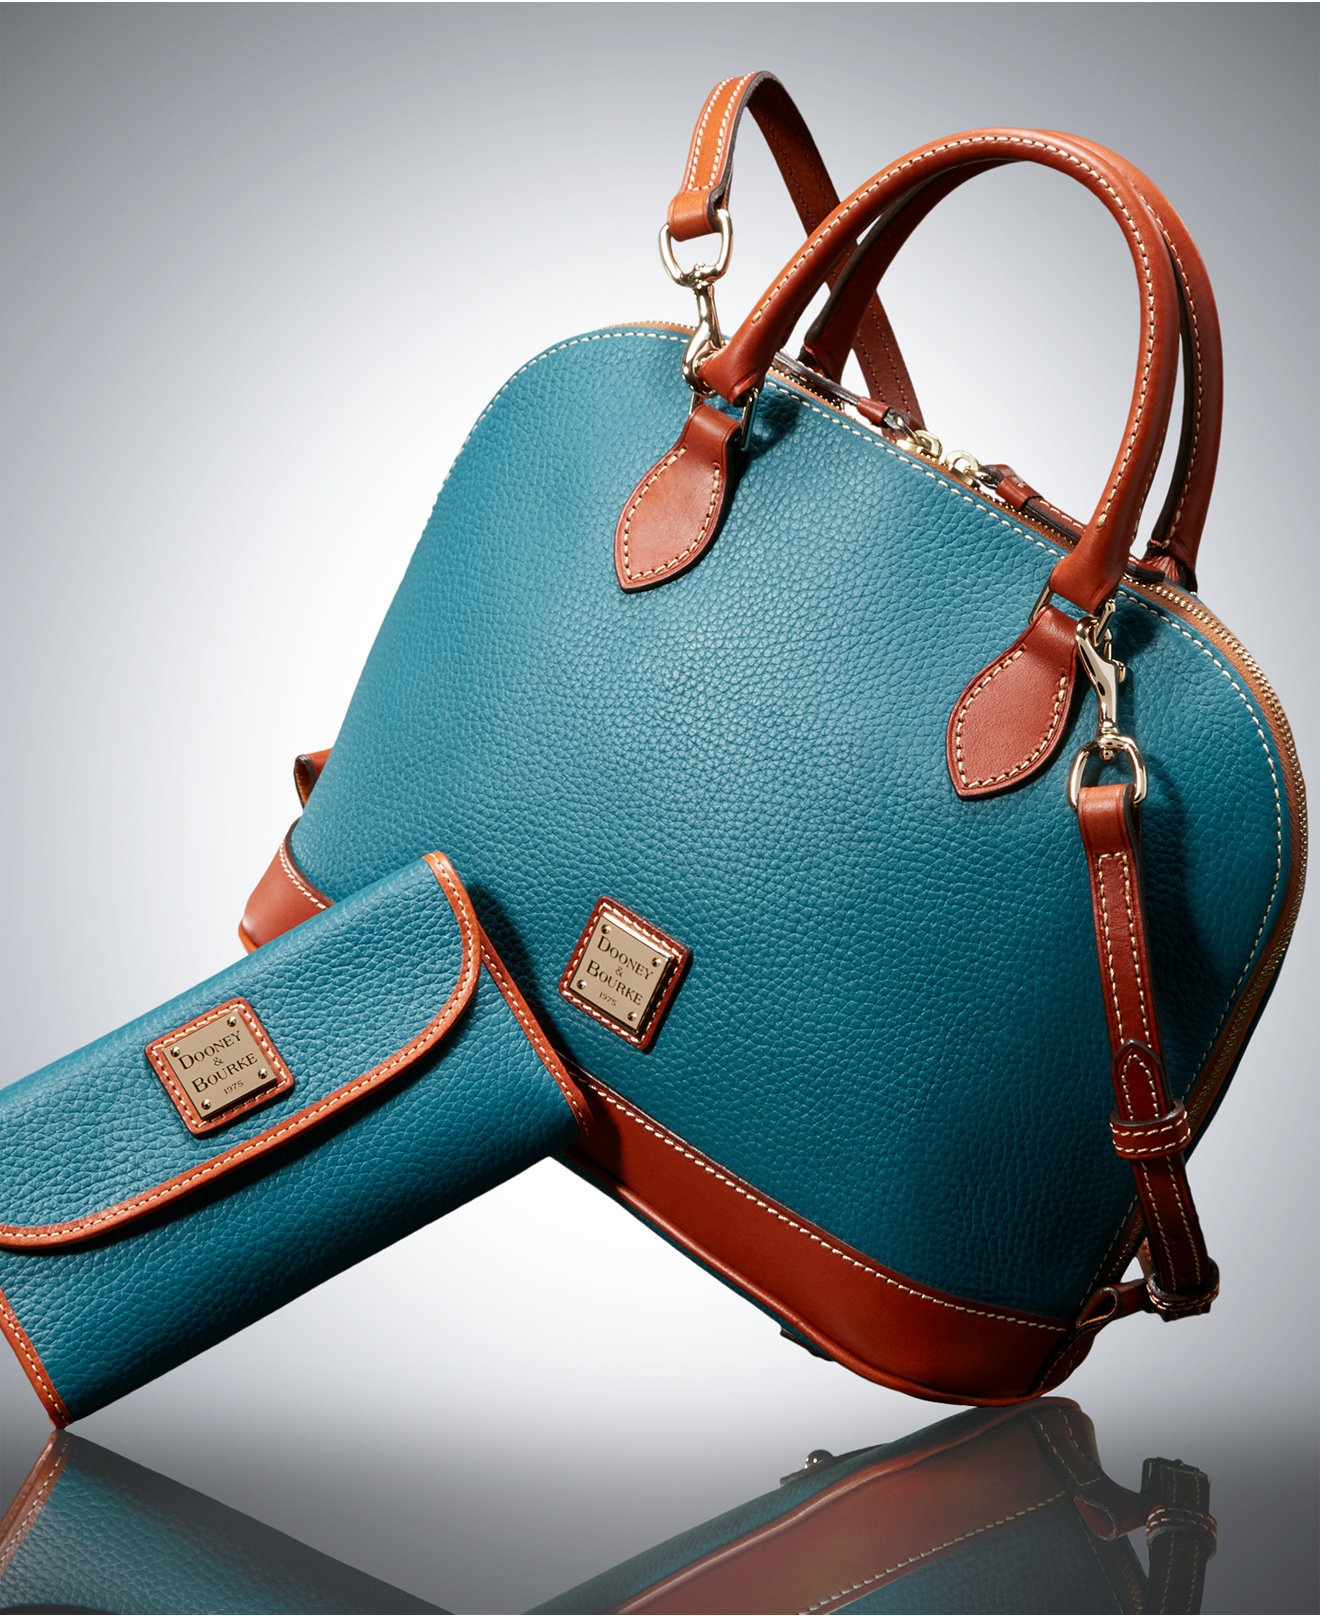 Zip Link Beds >> Dooney & Bourke Pebble Zip Zip Satchel and Continental Clutch Gift Set | Everything Turquoise